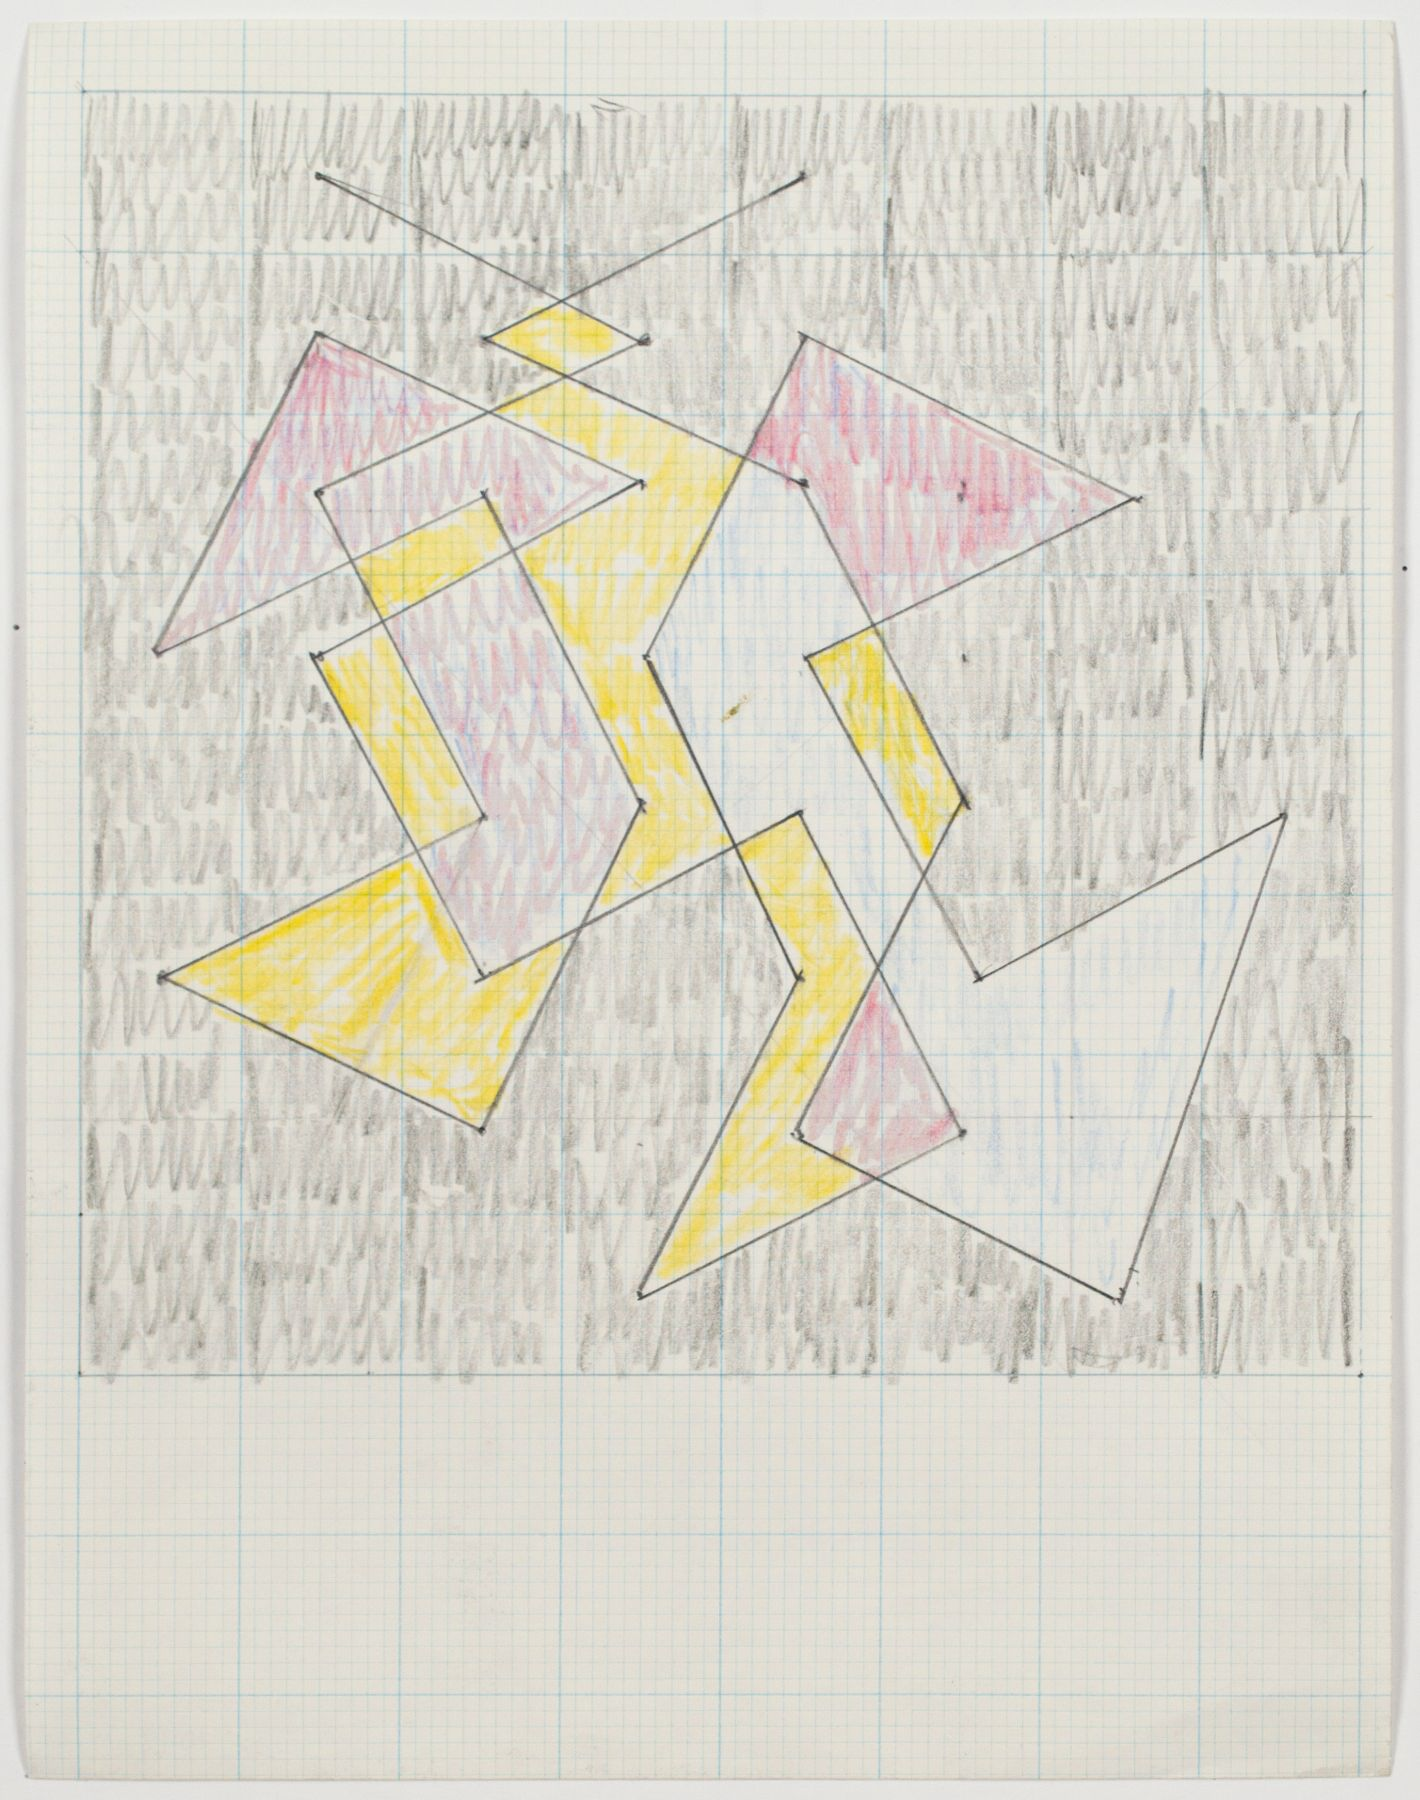 """Study for """"Knight Series"""", c. 1975, Graphite and colored pencil on graph paper"""